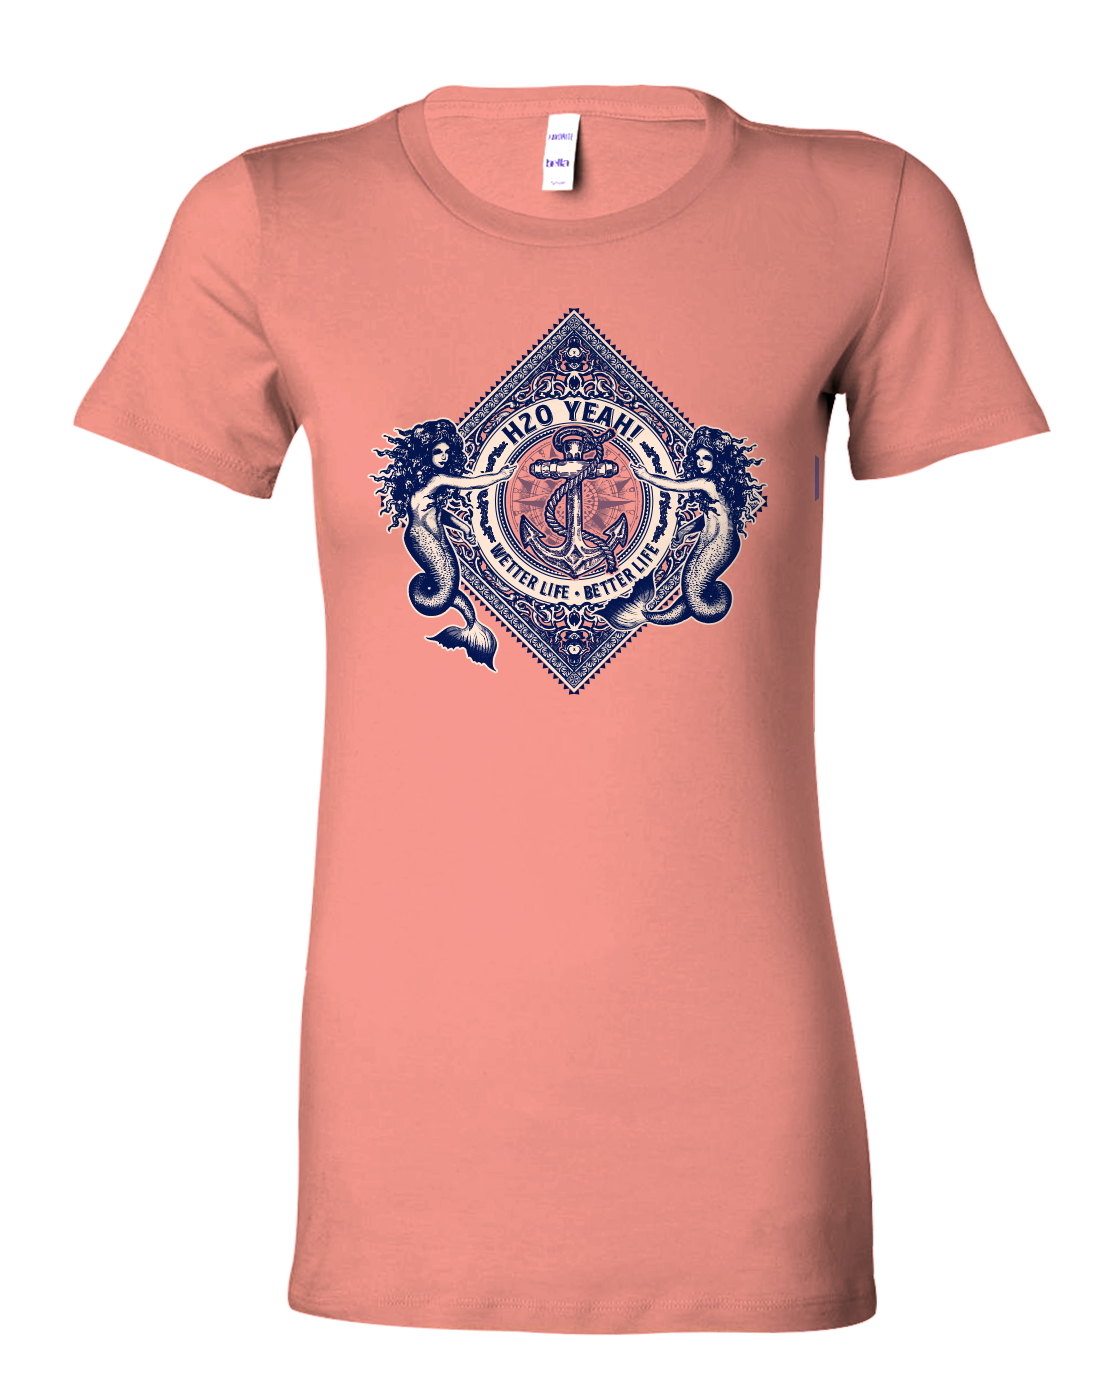 H2o Yeah! Women's Mermaid Diamond ~ Anchor tee